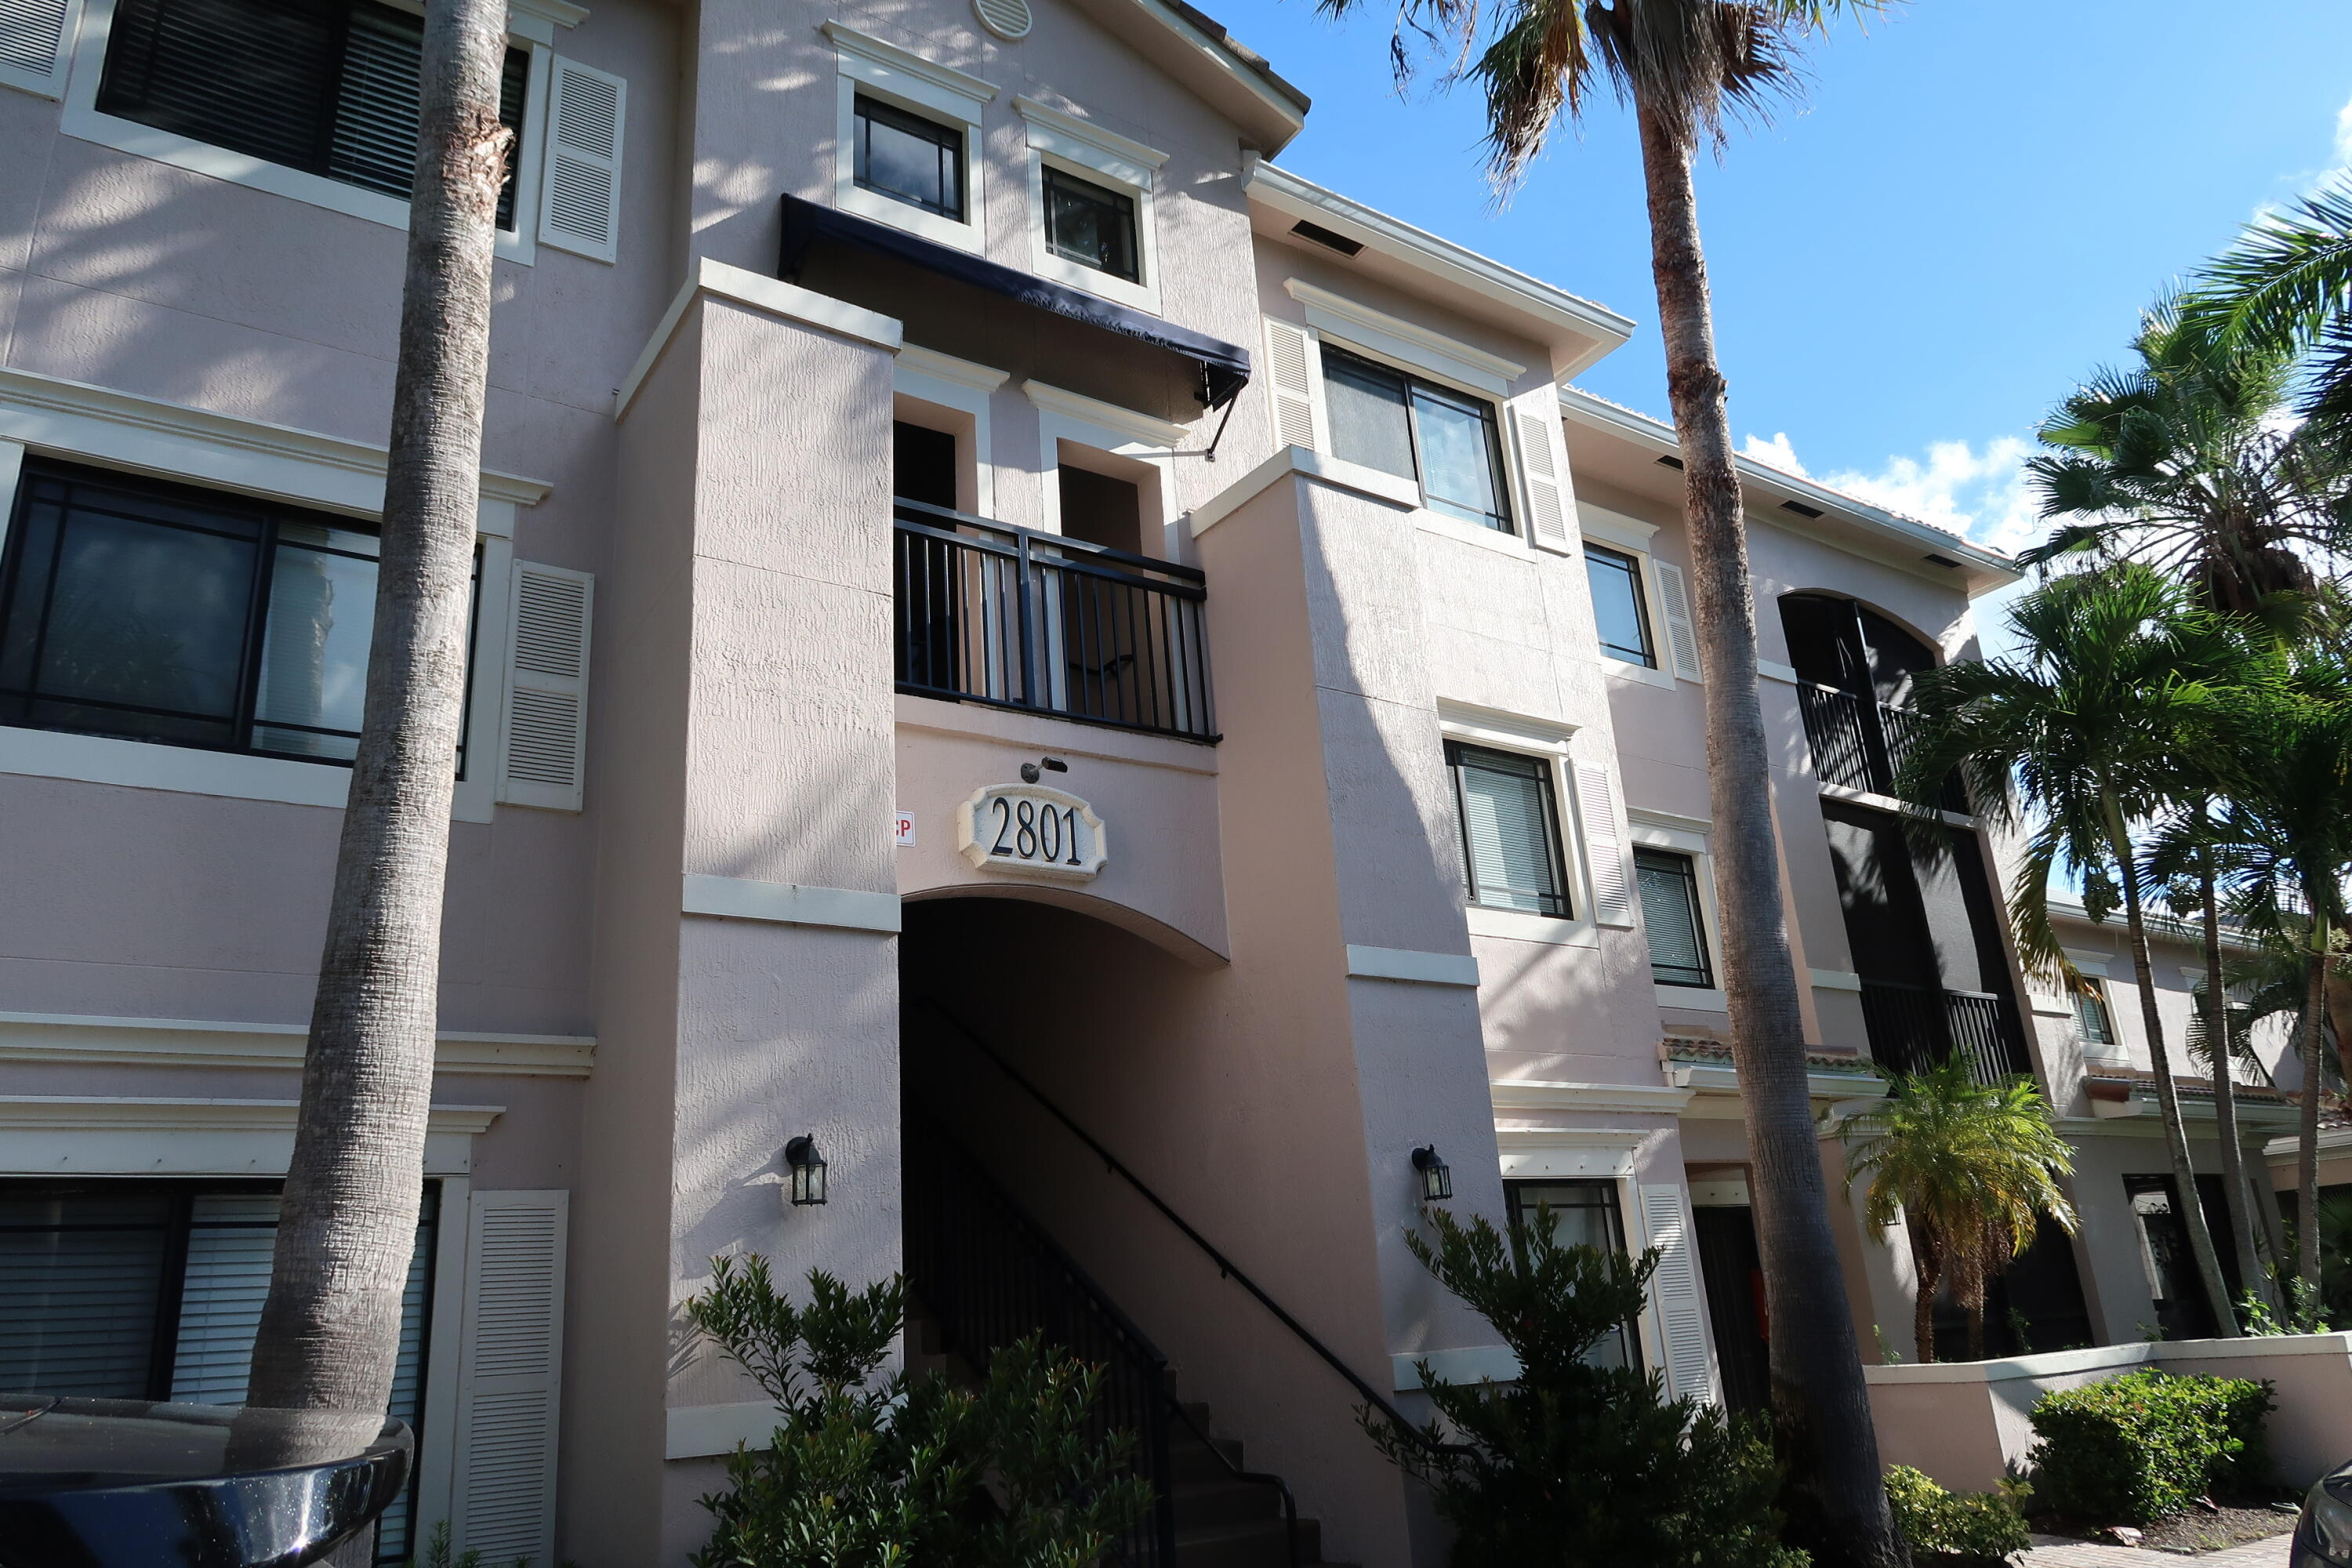 San Matera at The Gardens. Beautiful 2/2 with large screened in patio.  Within walking distance to the Gardens Mall & Downtown At The Gardens. All resort style amenities including pool, spa, steam room and fitness center.